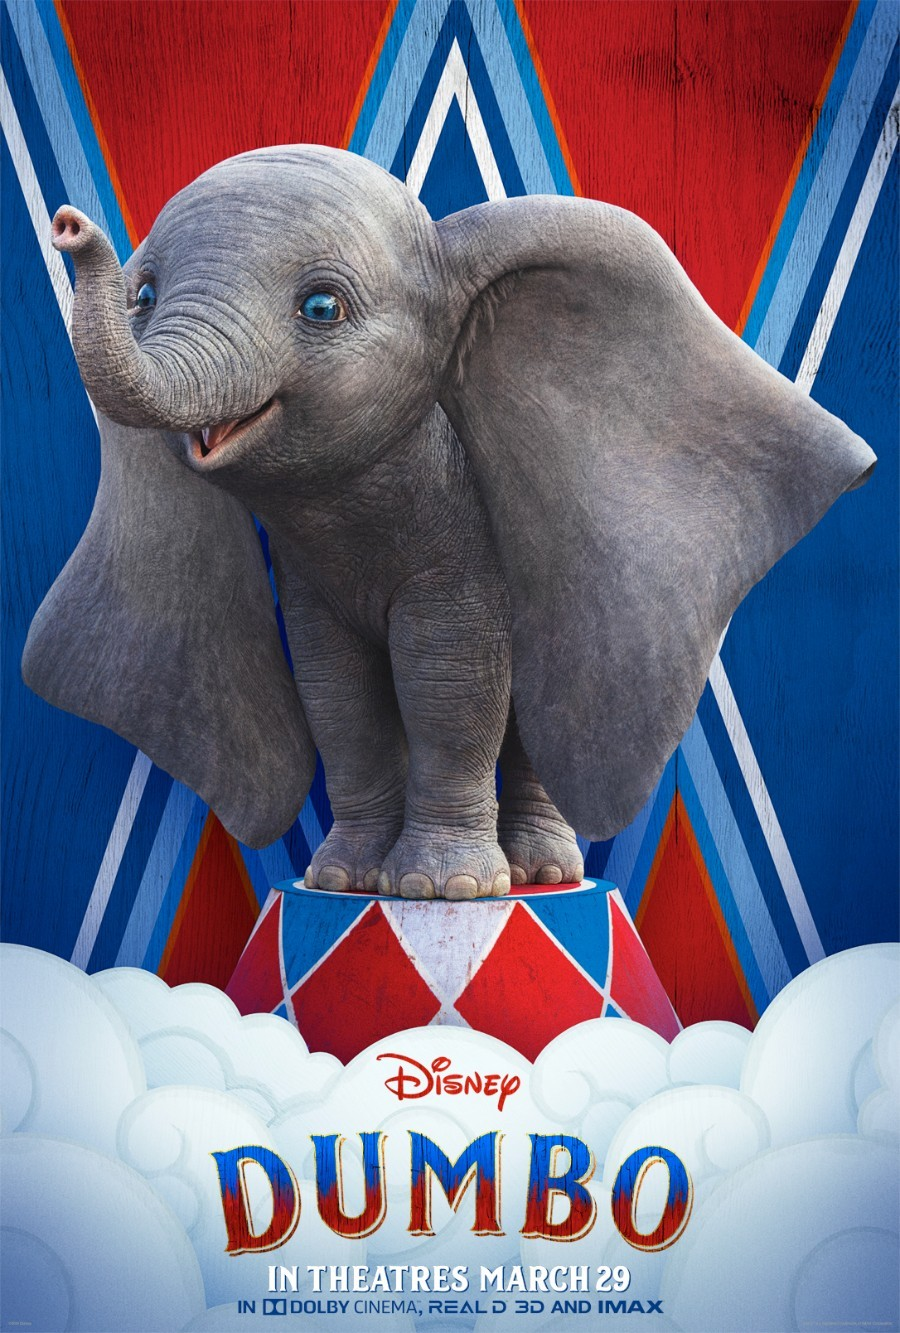 Check out new 'Dumbo' sneak peek and character posters